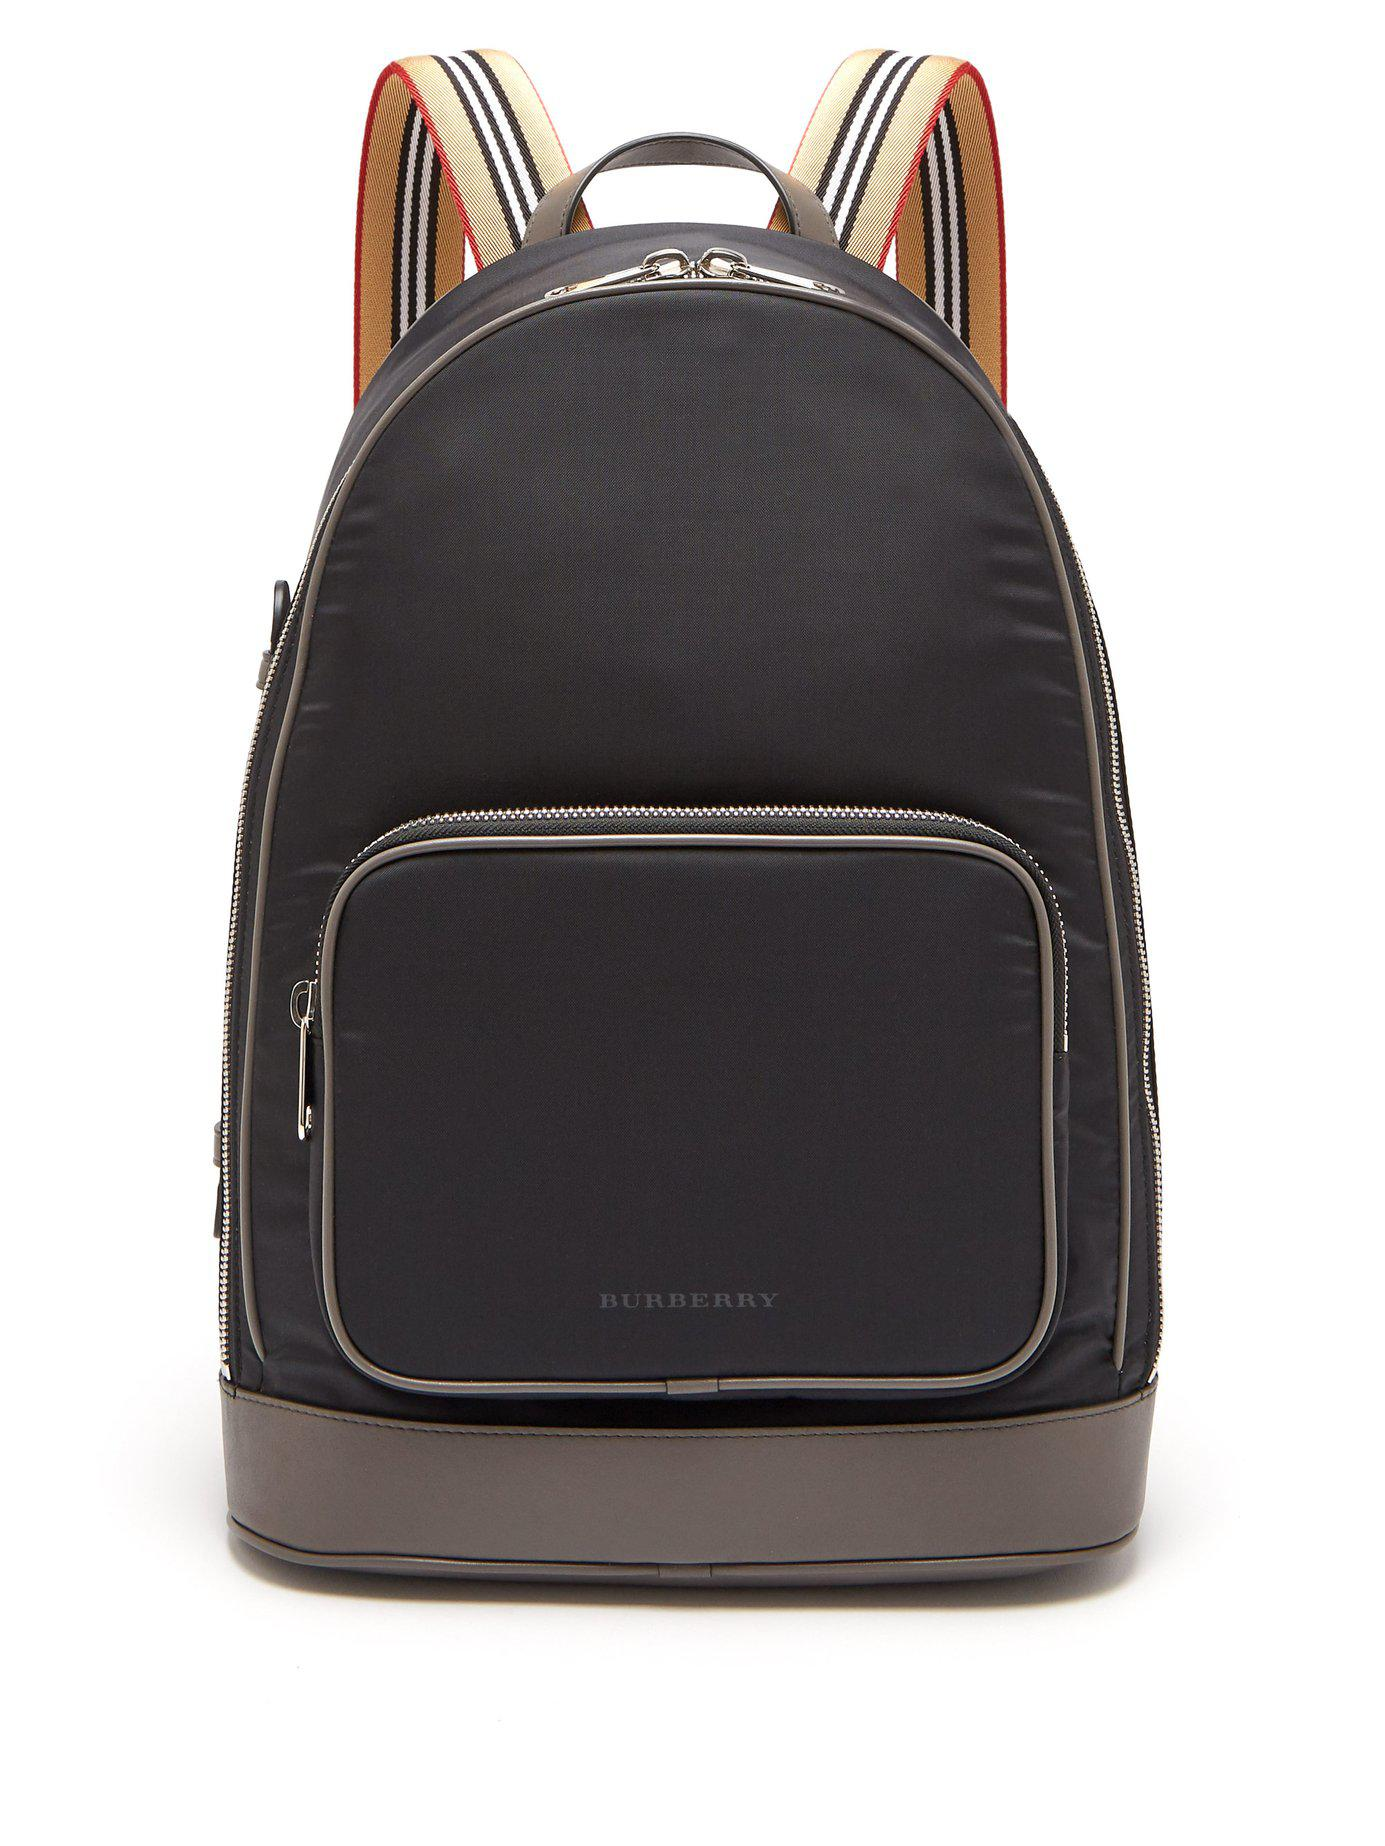 df4d35a67af0 Burberry - Black Rocco Cay Nylon Backpack for Men - Lyst. View fullscreen